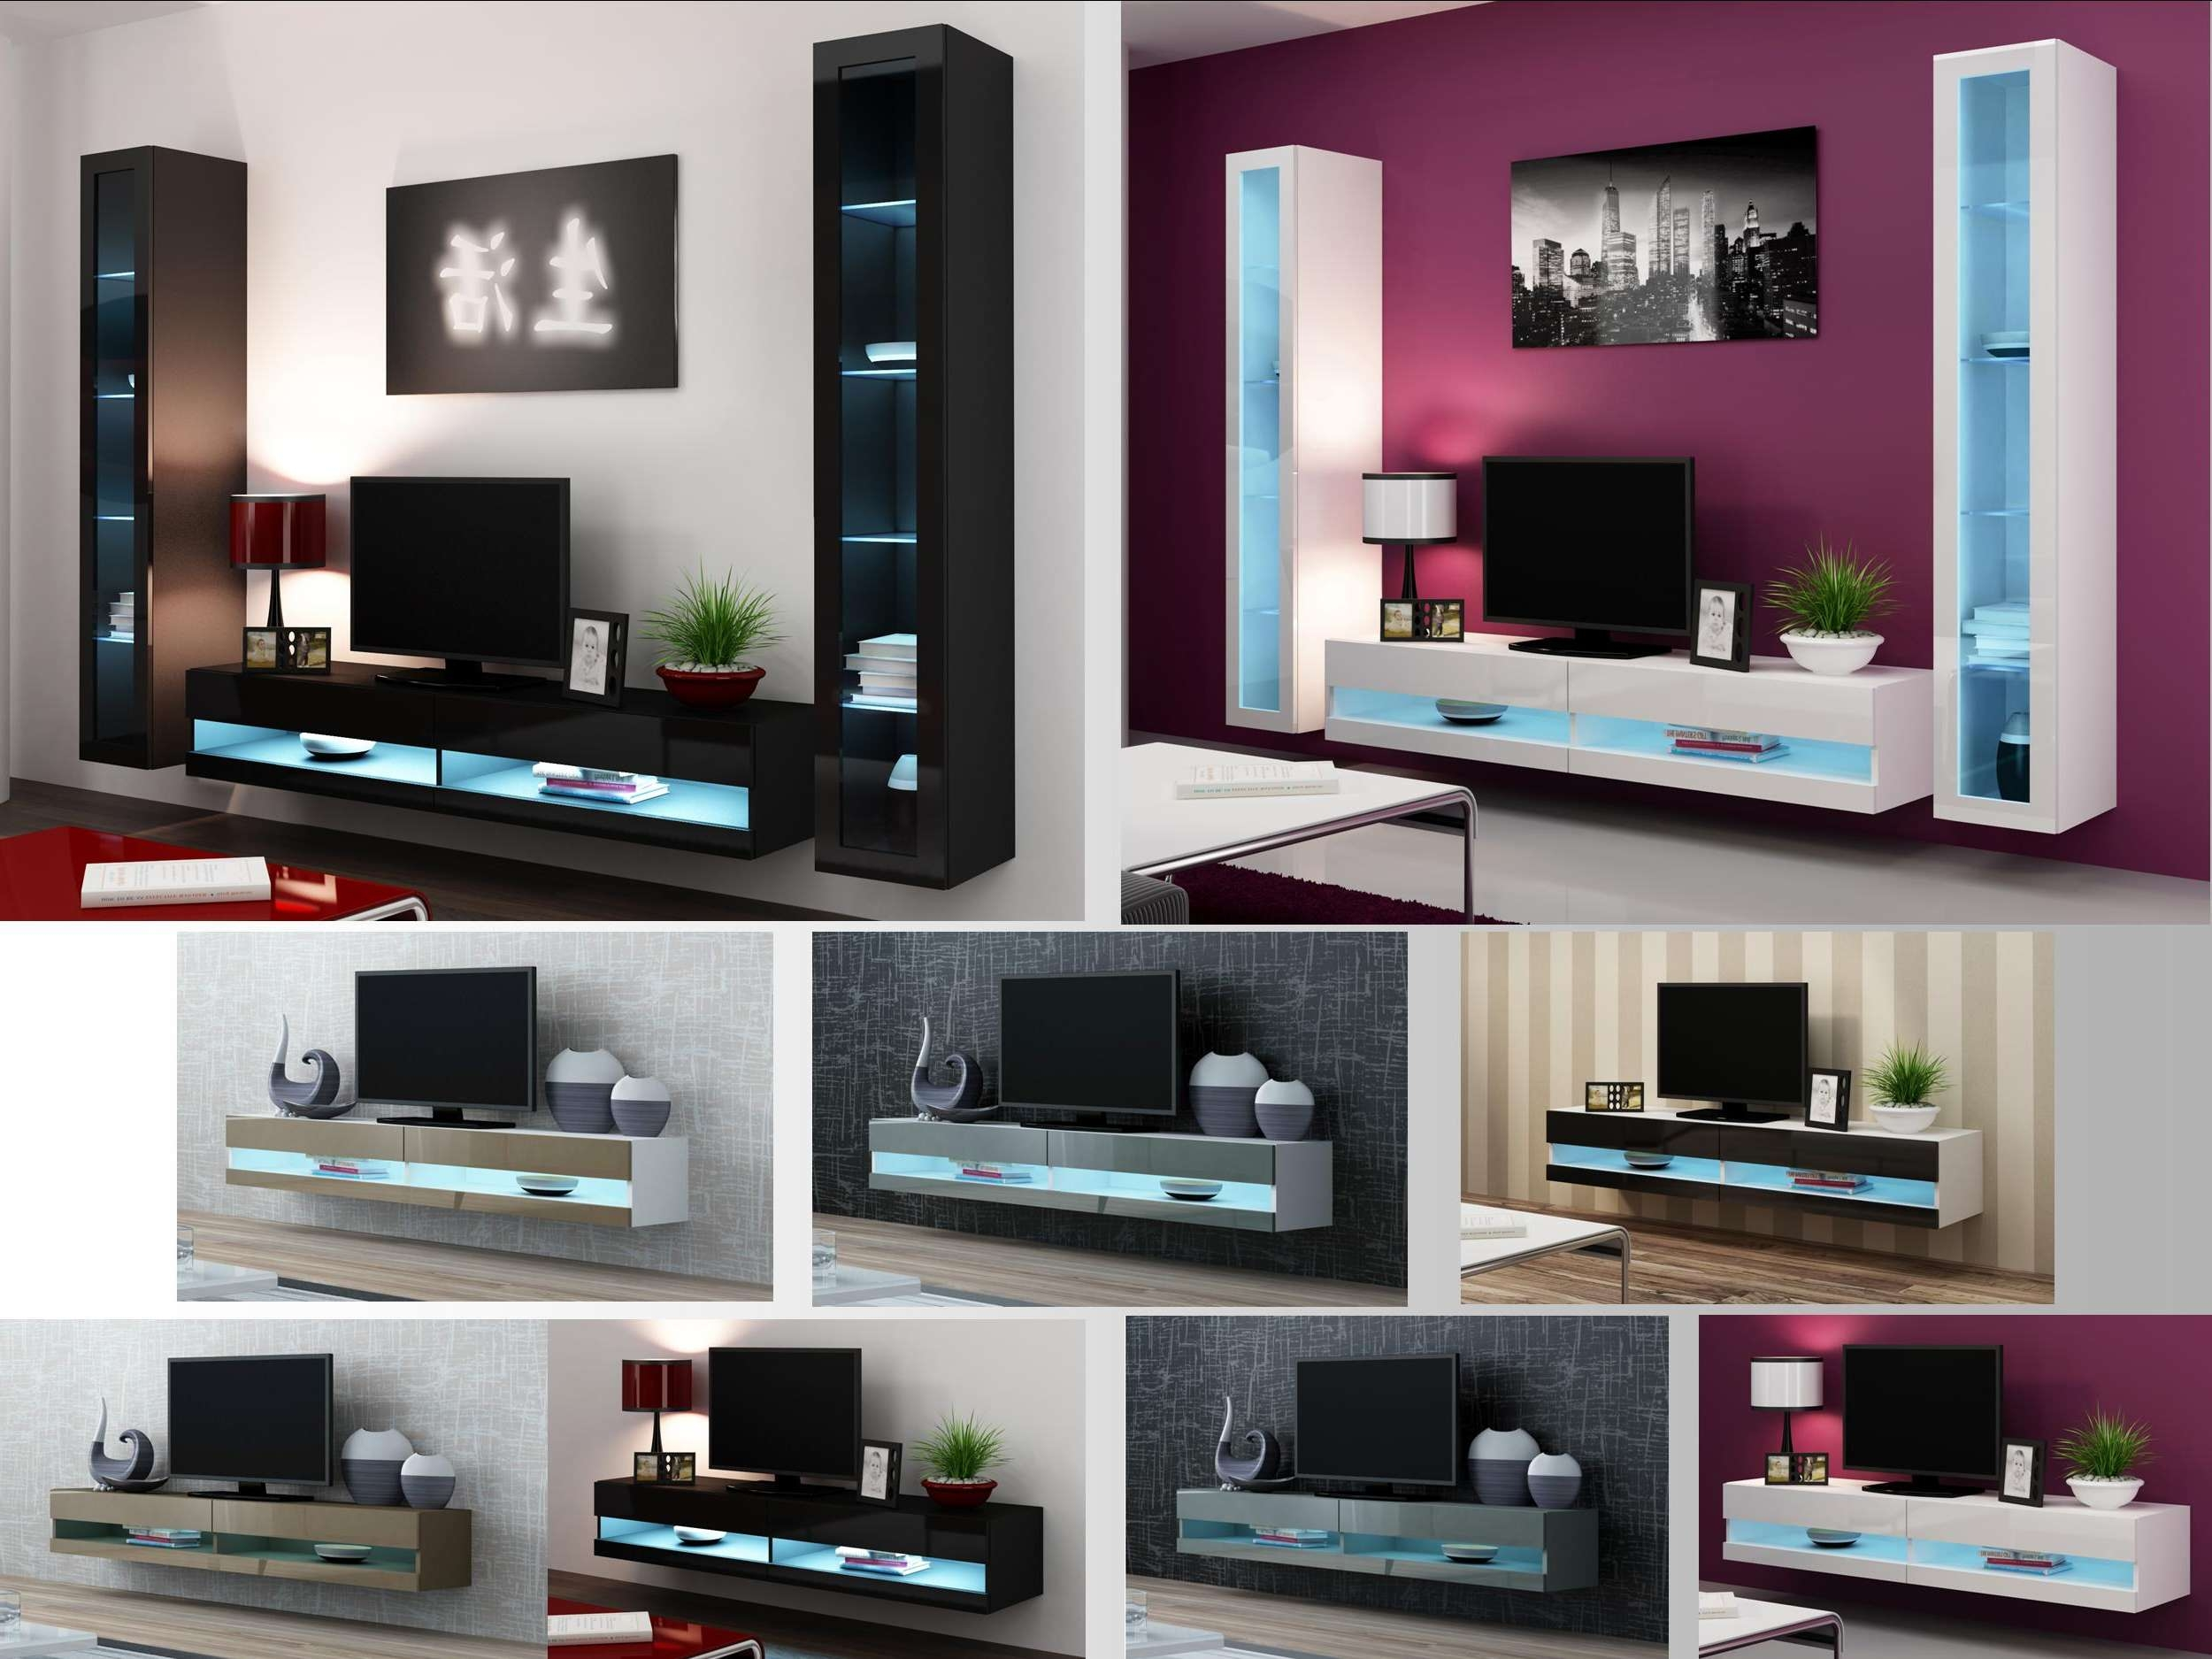 High Gloss Living Room Furniture – Tv Stand, Wall Mounted Cabinet Pertaining To Tv Cabinets And Wall Units (View 5 of 20)